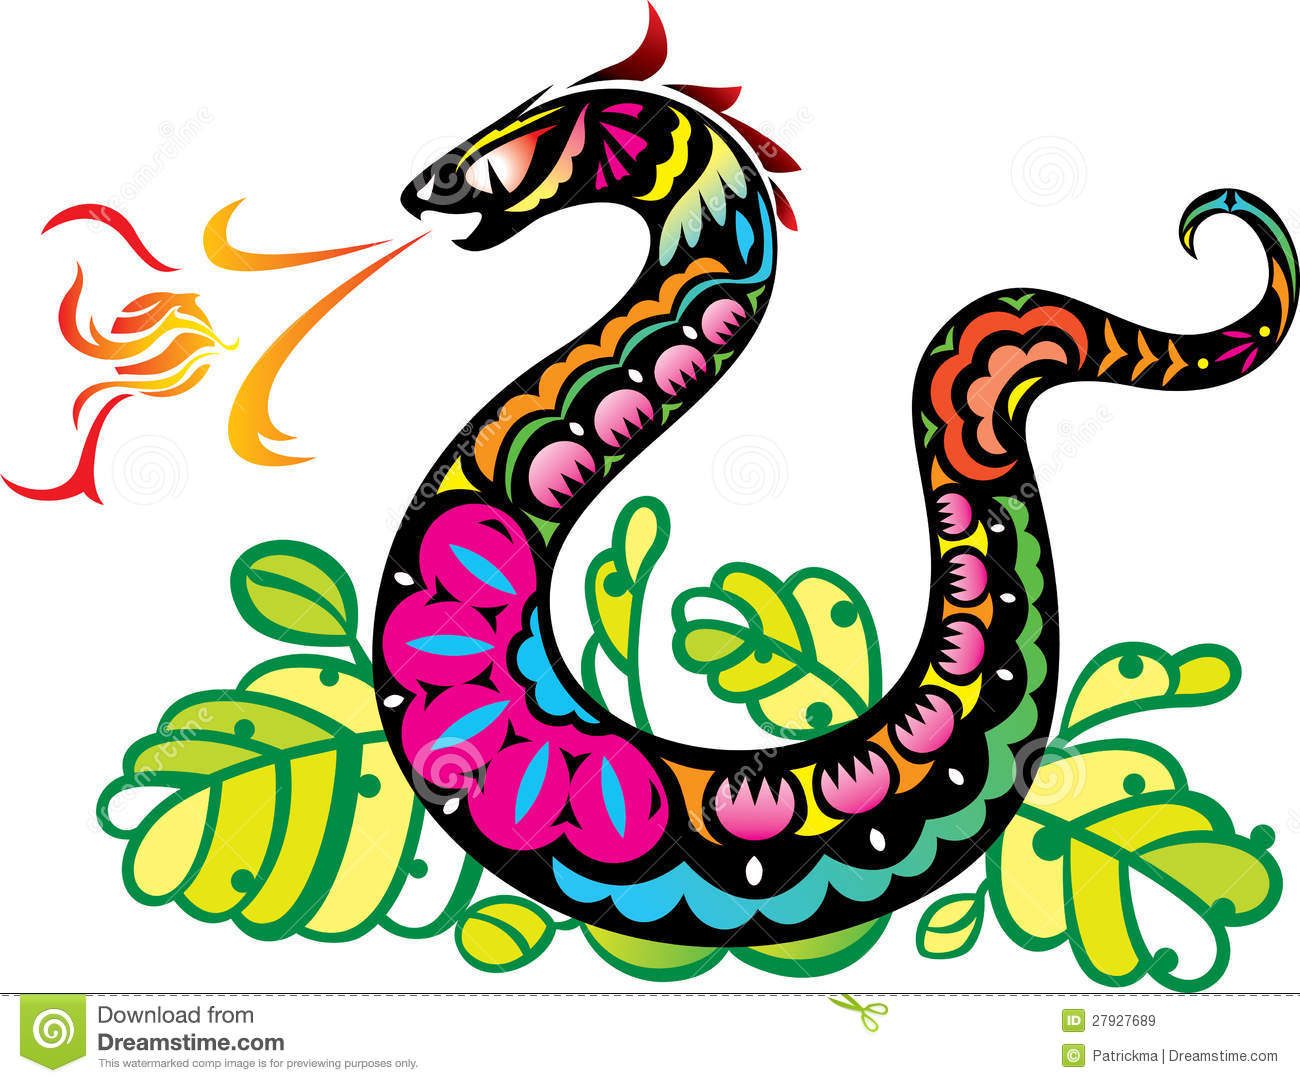 Royalty Free Stock Images Chinese Style Snake Breathing Fire Ball Art Image27927689 on cobra 19 xs